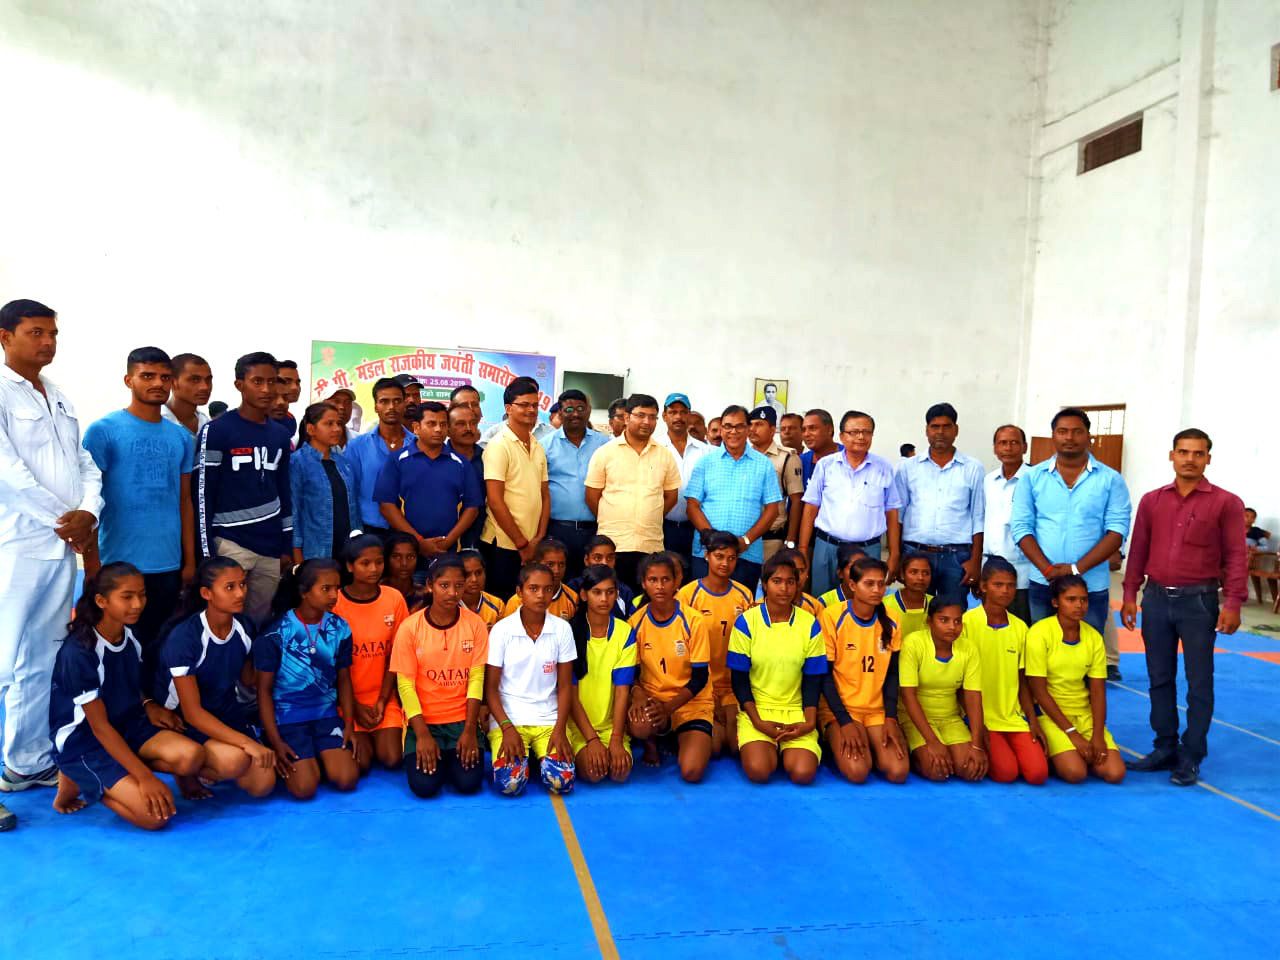 Dr.Madhepuri along with DM Navdeep Shukla, Arun Kumar, DSO & others with Kabaddi Players in BP Mandal Indoor Stadium.